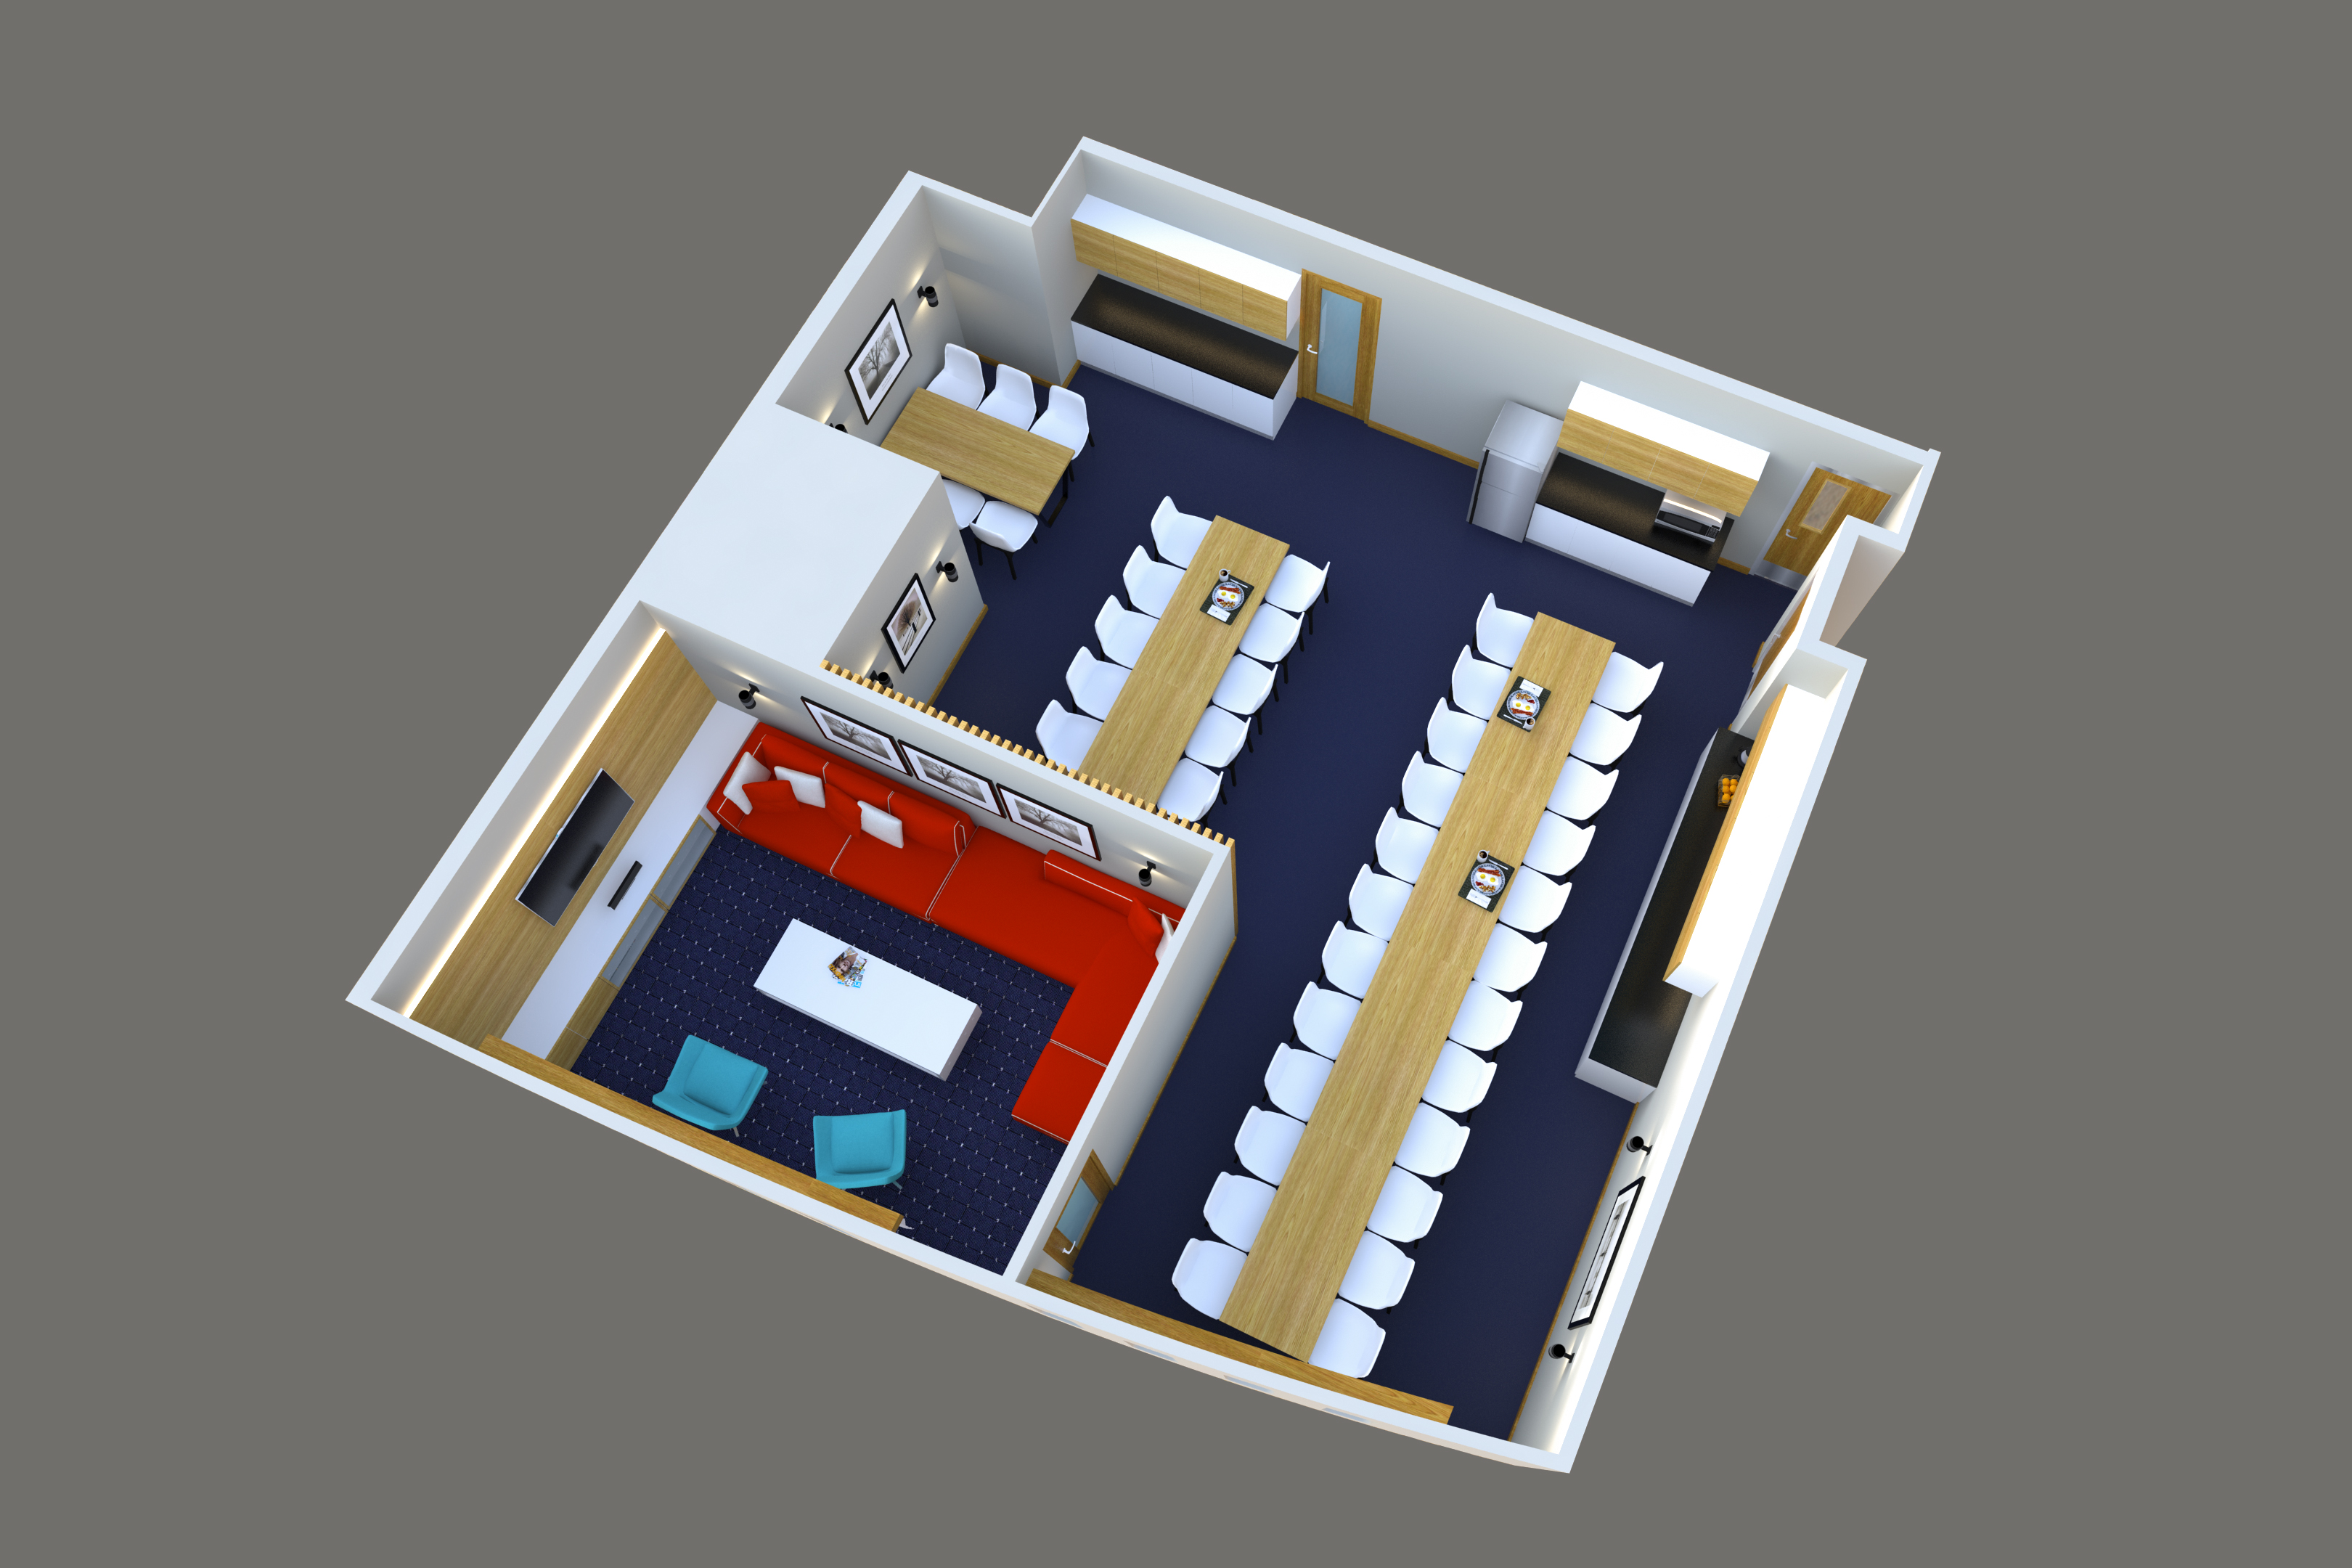 mess-and-recreation-room-axonometric-view